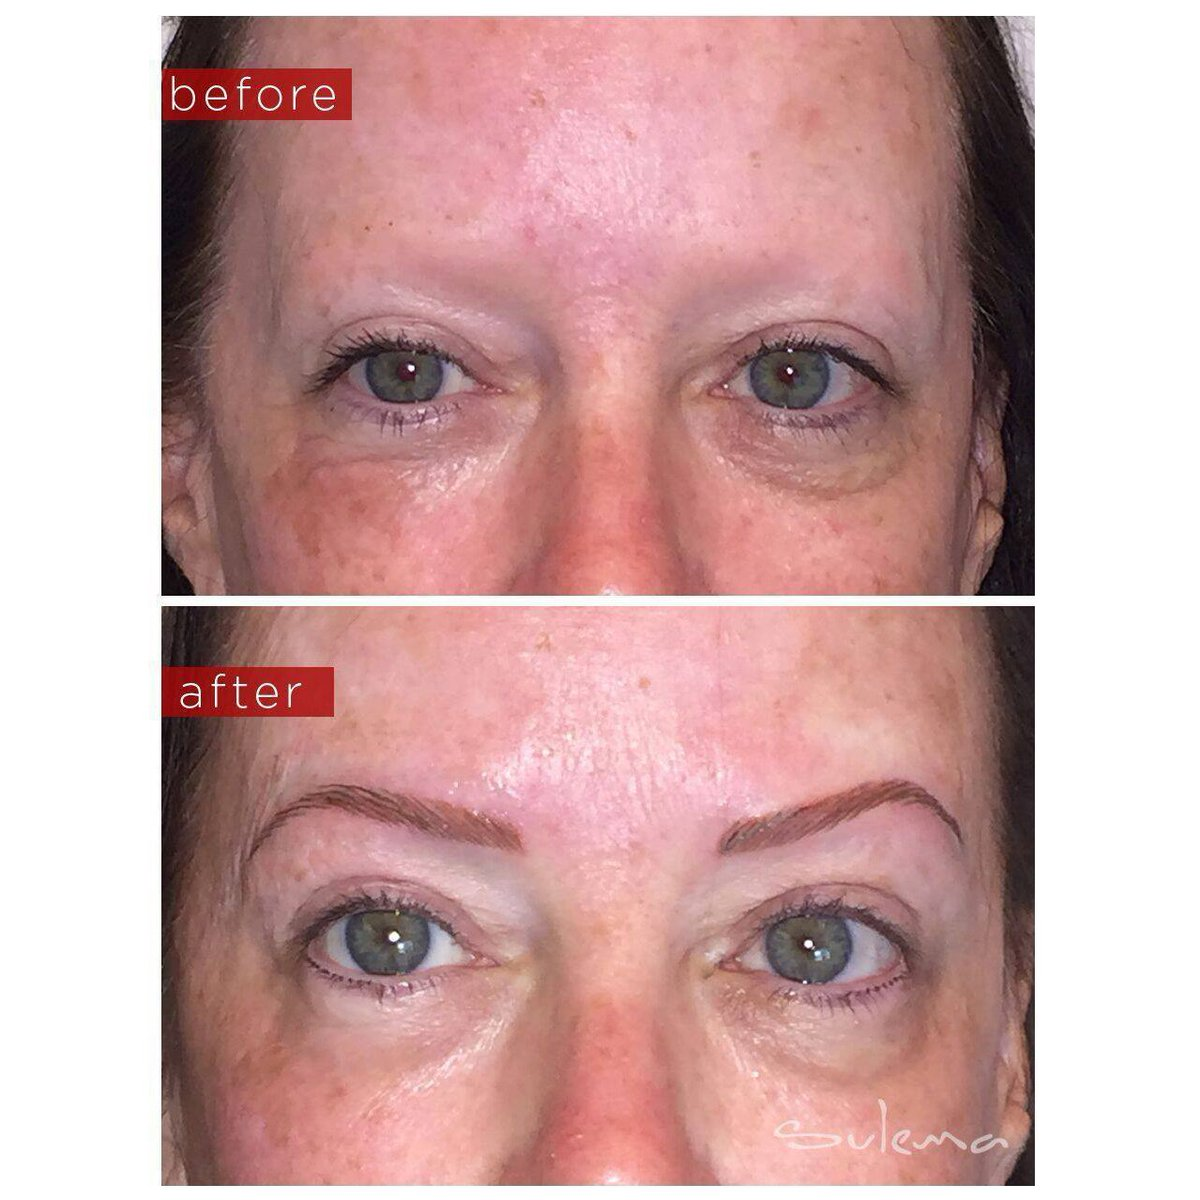 Do you want get #microblading done to your #eyebrows, but haven&#39;t made up your yet? Check out the results!  http:// bit.ly/2uaooCo  &nbsp;   #sofla<br>http://pic.twitter.com/ZbLC0MlxFx